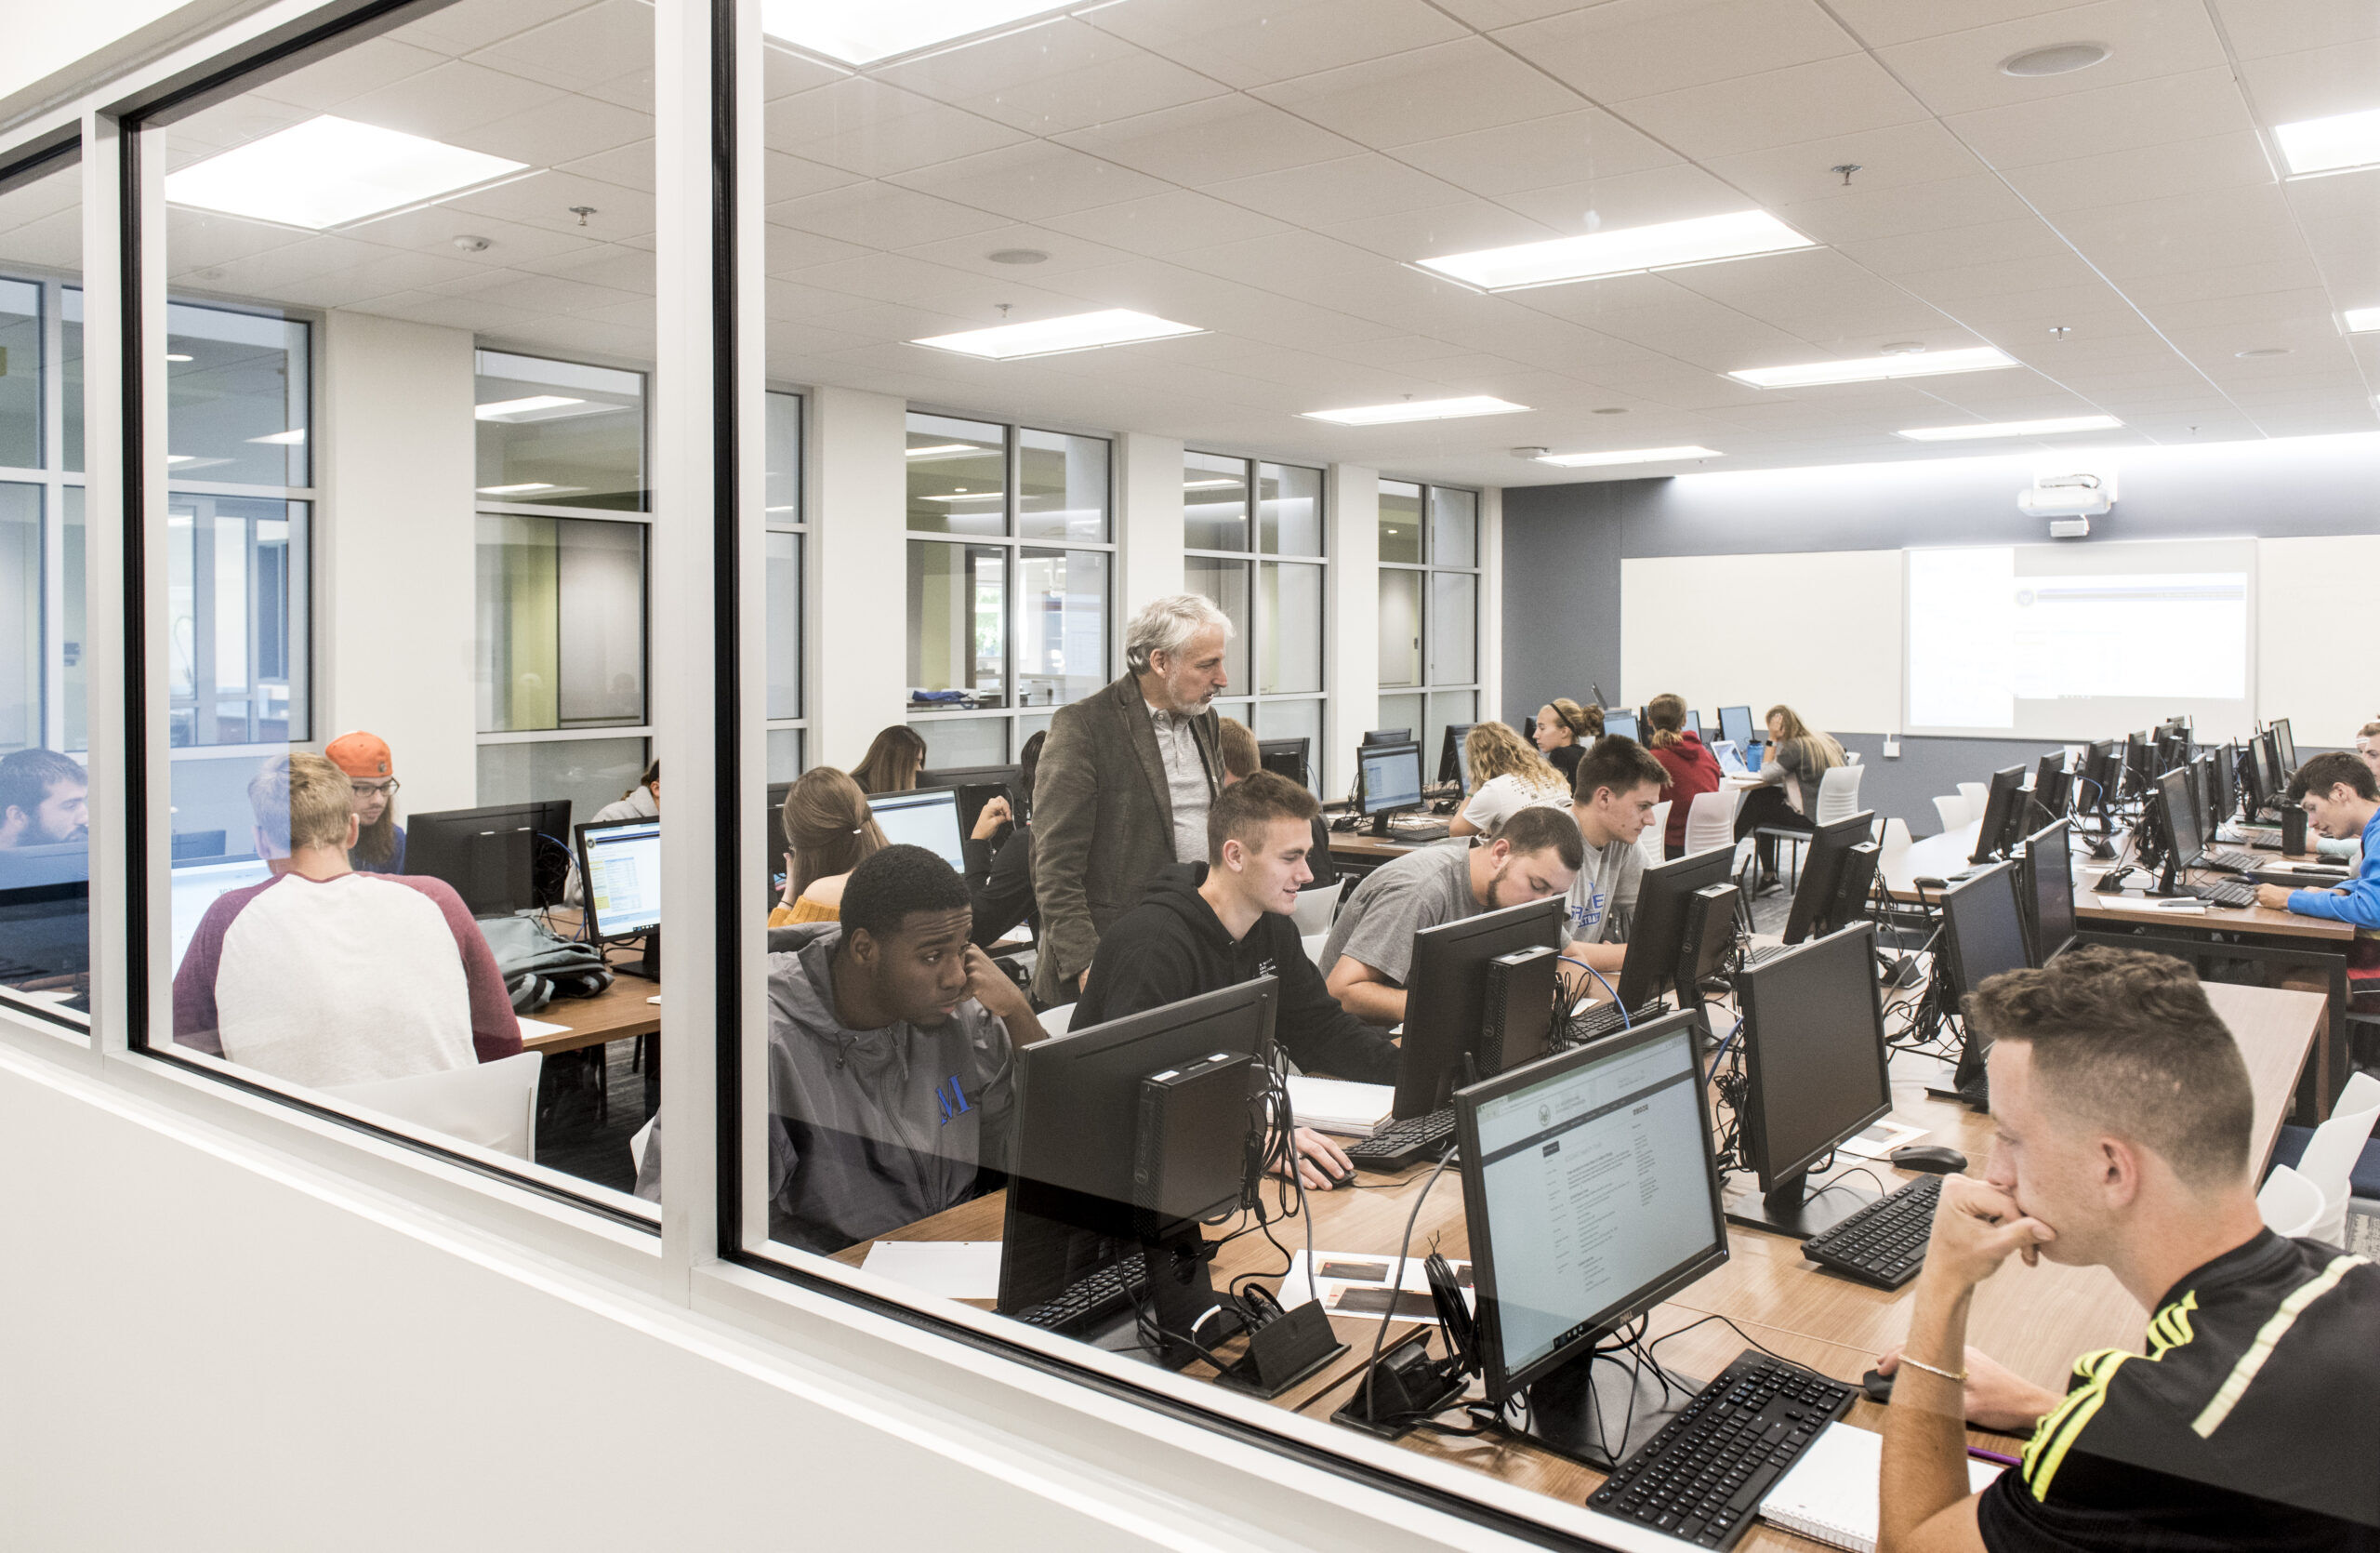 Students in computer lab. Apply to Marian University.